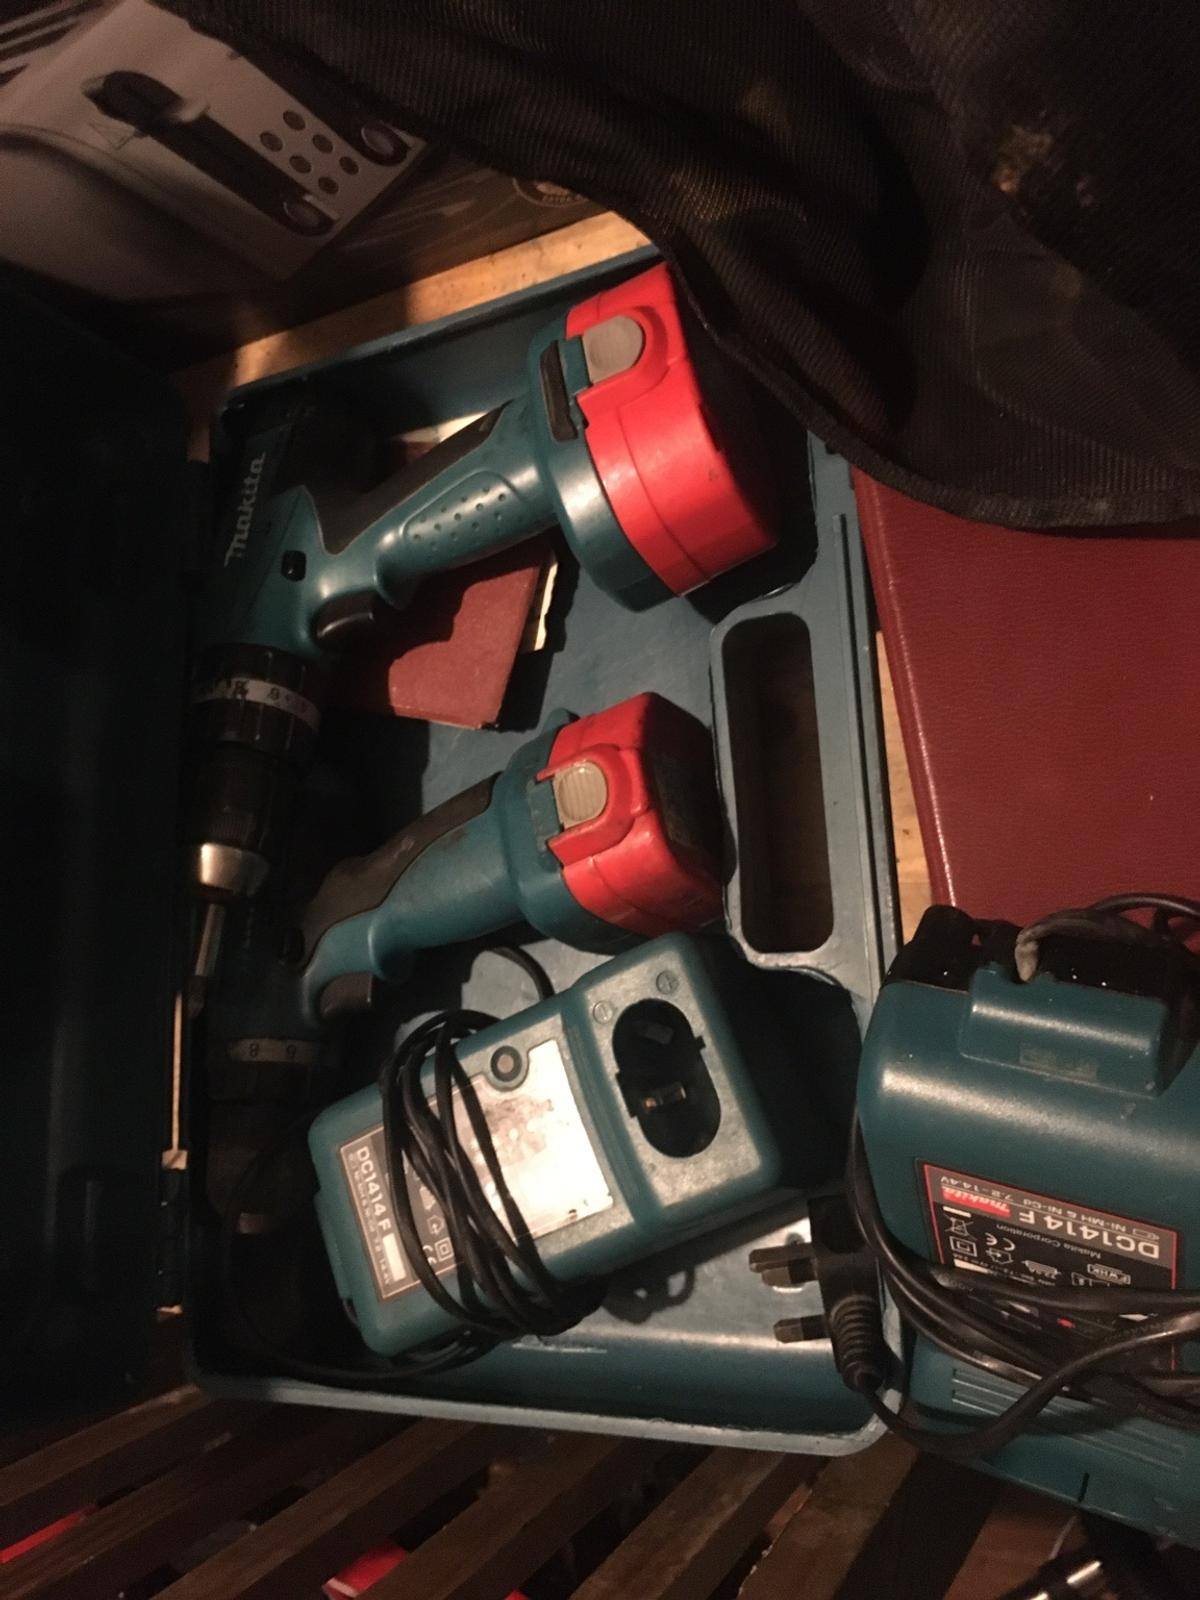 Makita drill set been in loft was working powers gone out batterys can't seem to get chargers to work